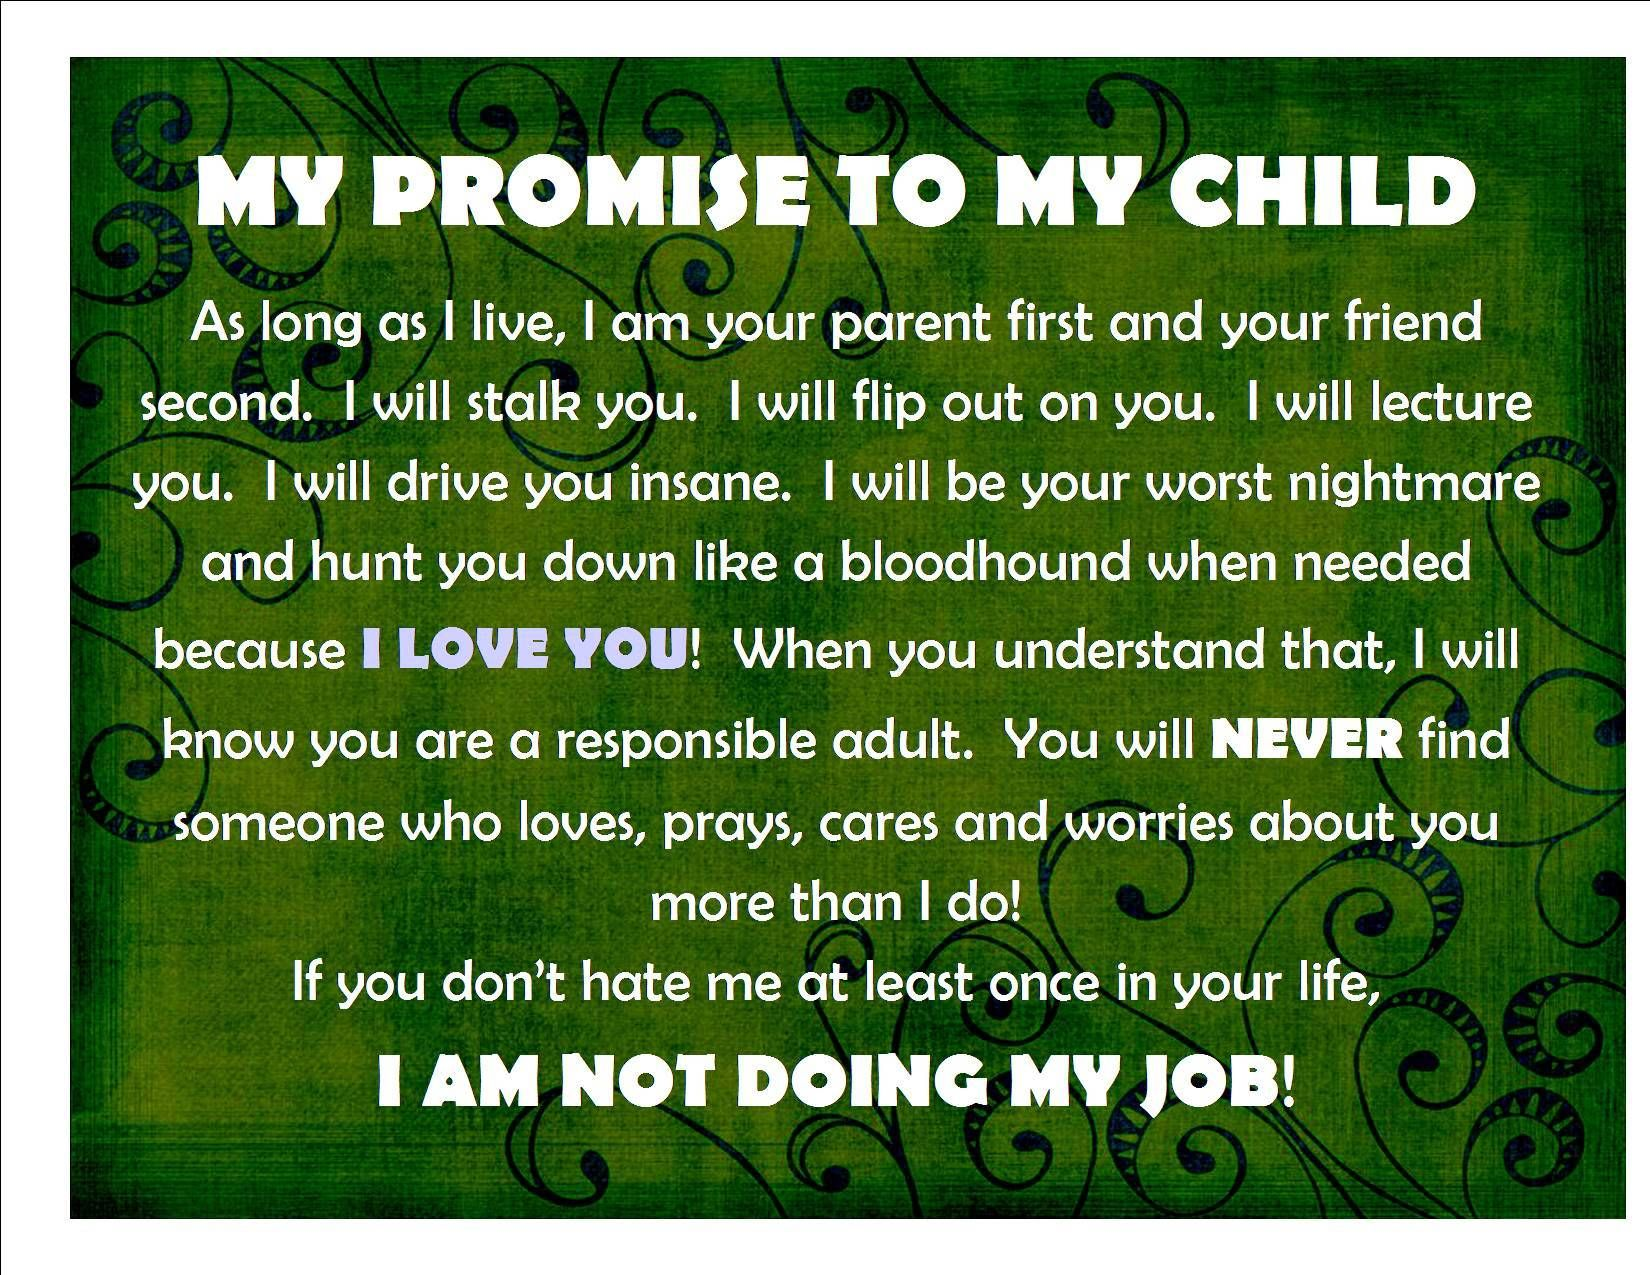 Daughter Quotes For Facebook: I Love My Daughter!